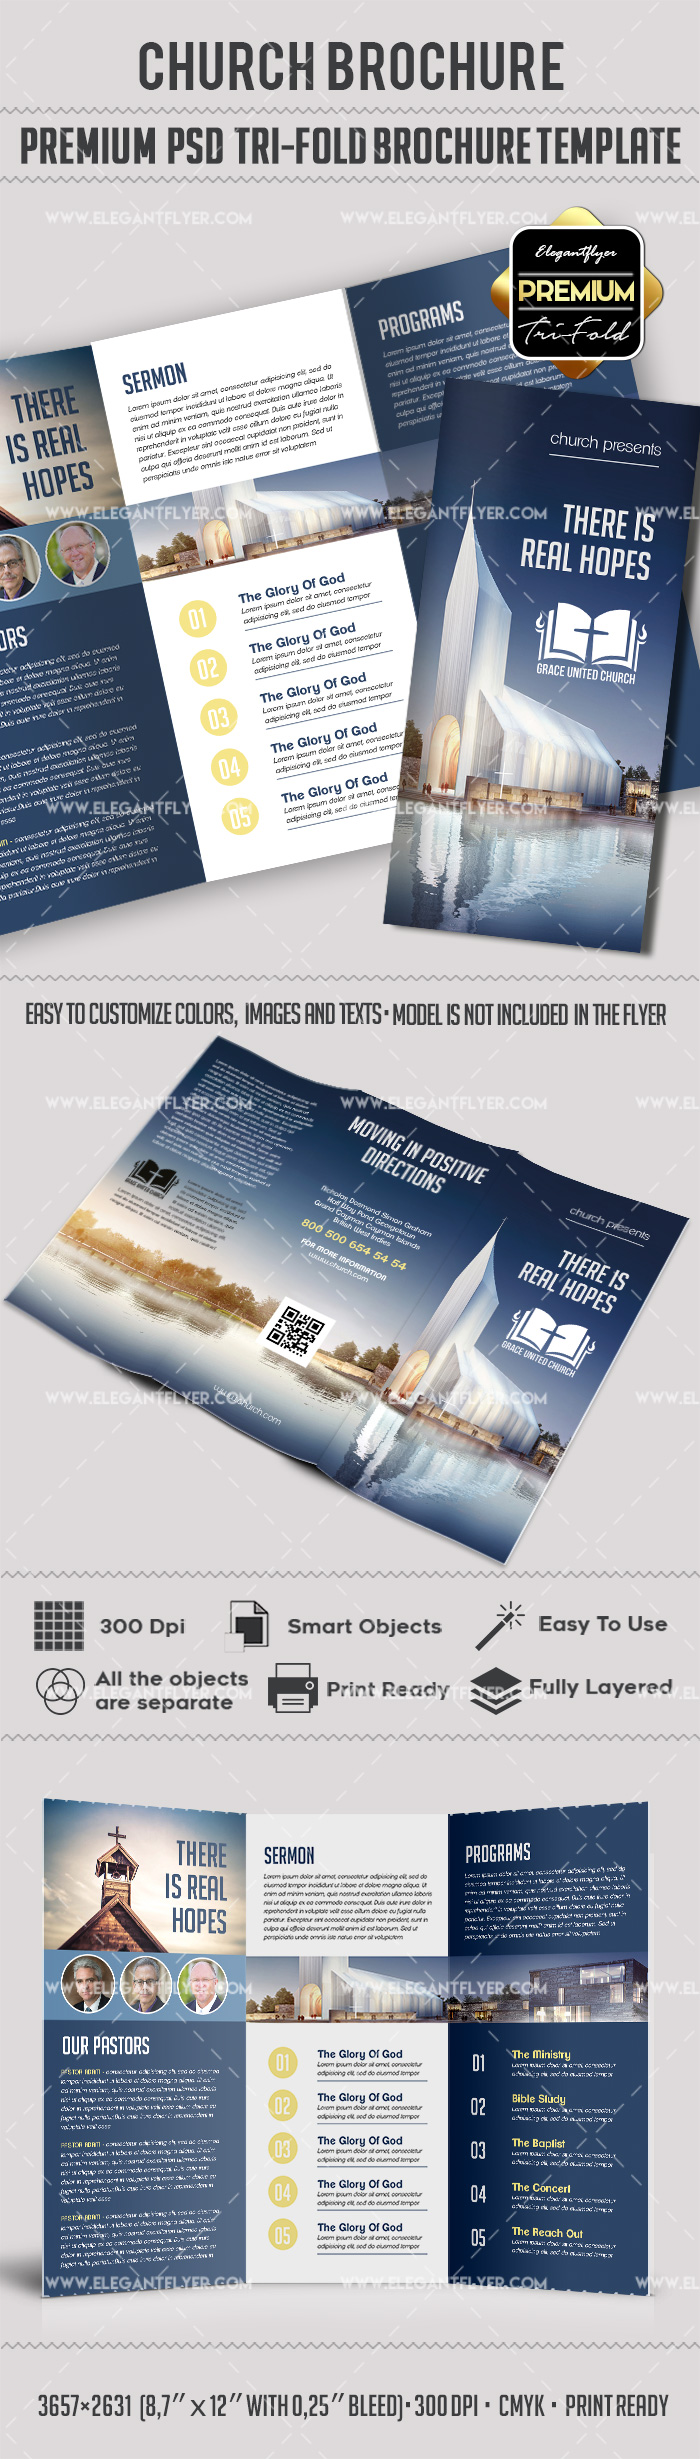 Church Premium TriFold PSD Brochure Template By ElegantFlyer - Church brochure templates